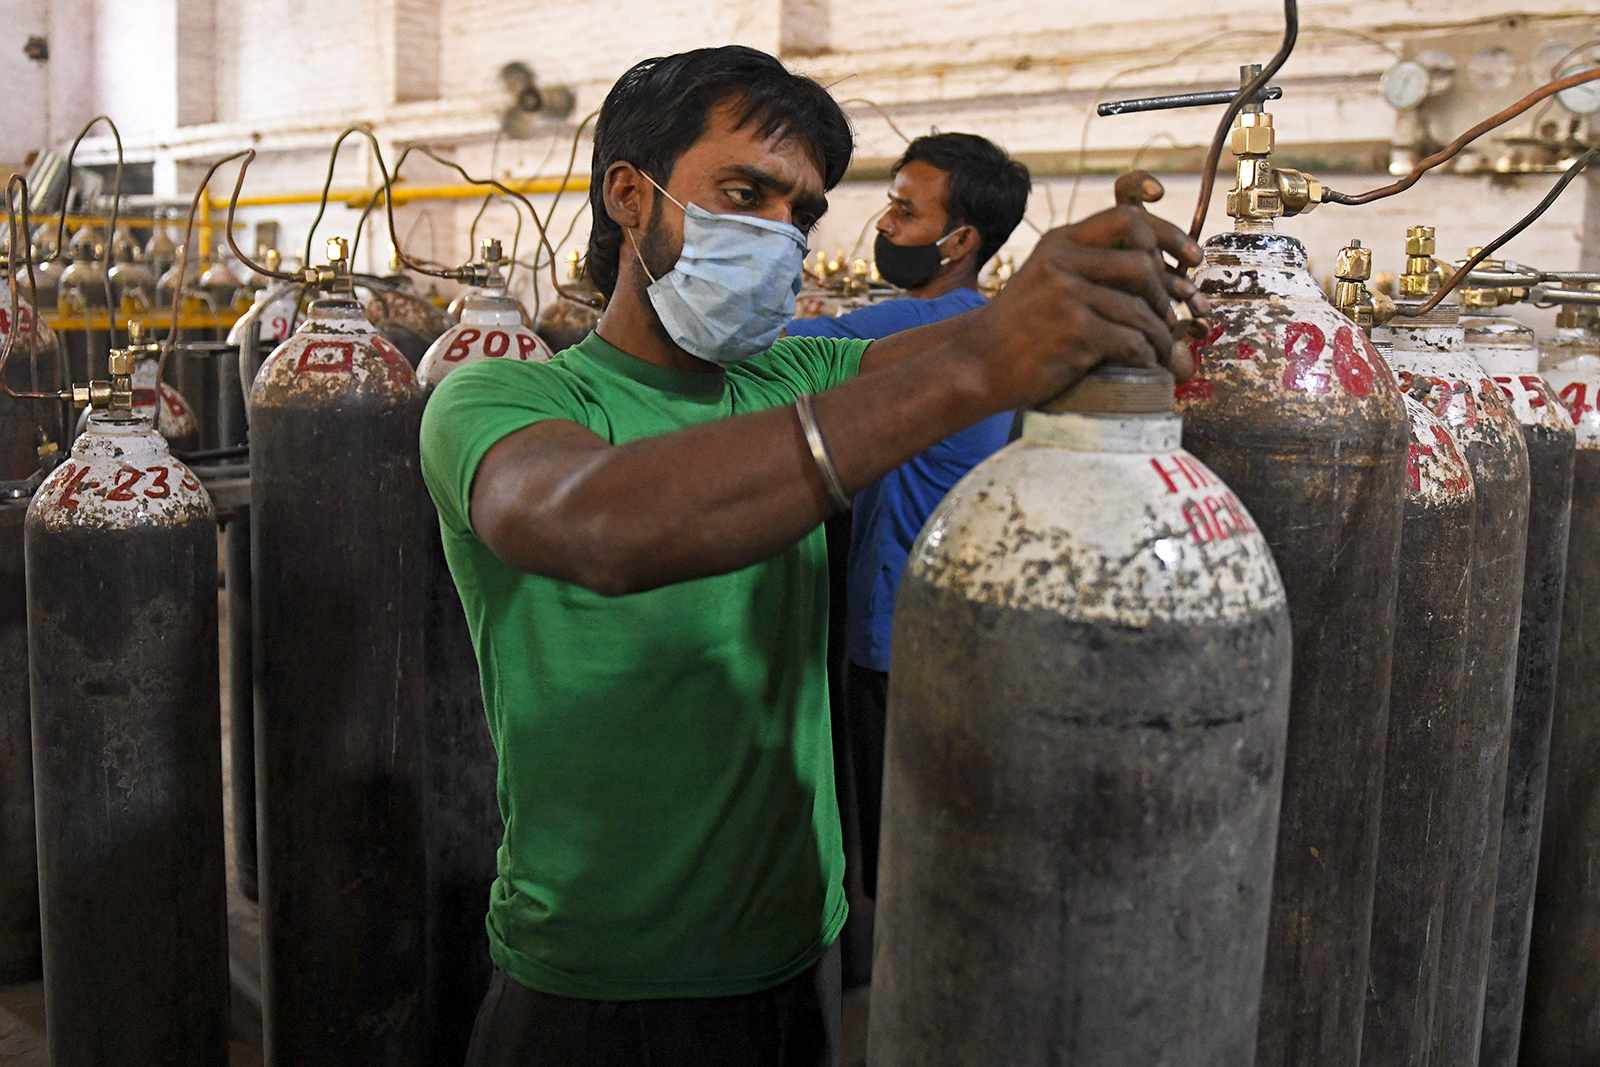 Workers are seen sorting oxygen cylinders that are being used for Covid-19 patients before dispatching them to hospitals at a facility on the outskirts of Amritsar, India, on April 28.